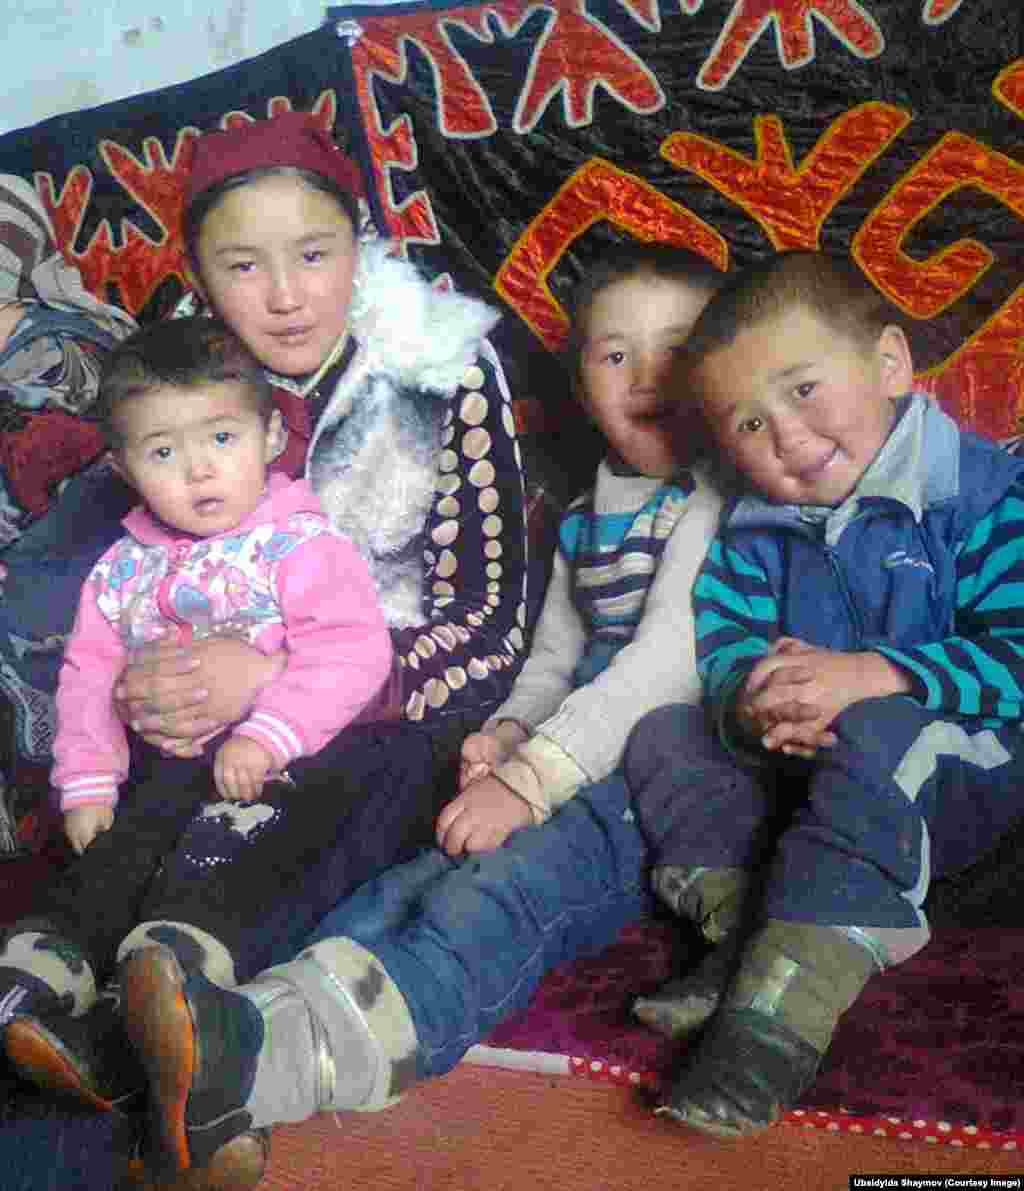 Children in Bash-Gumboz. Ubaidylda Shaimov and his wife have helped to raise Talant, the boy on the right, while his mother dealt with serious health problems. The Murghab region suffers from high infant and mother mortality rates.